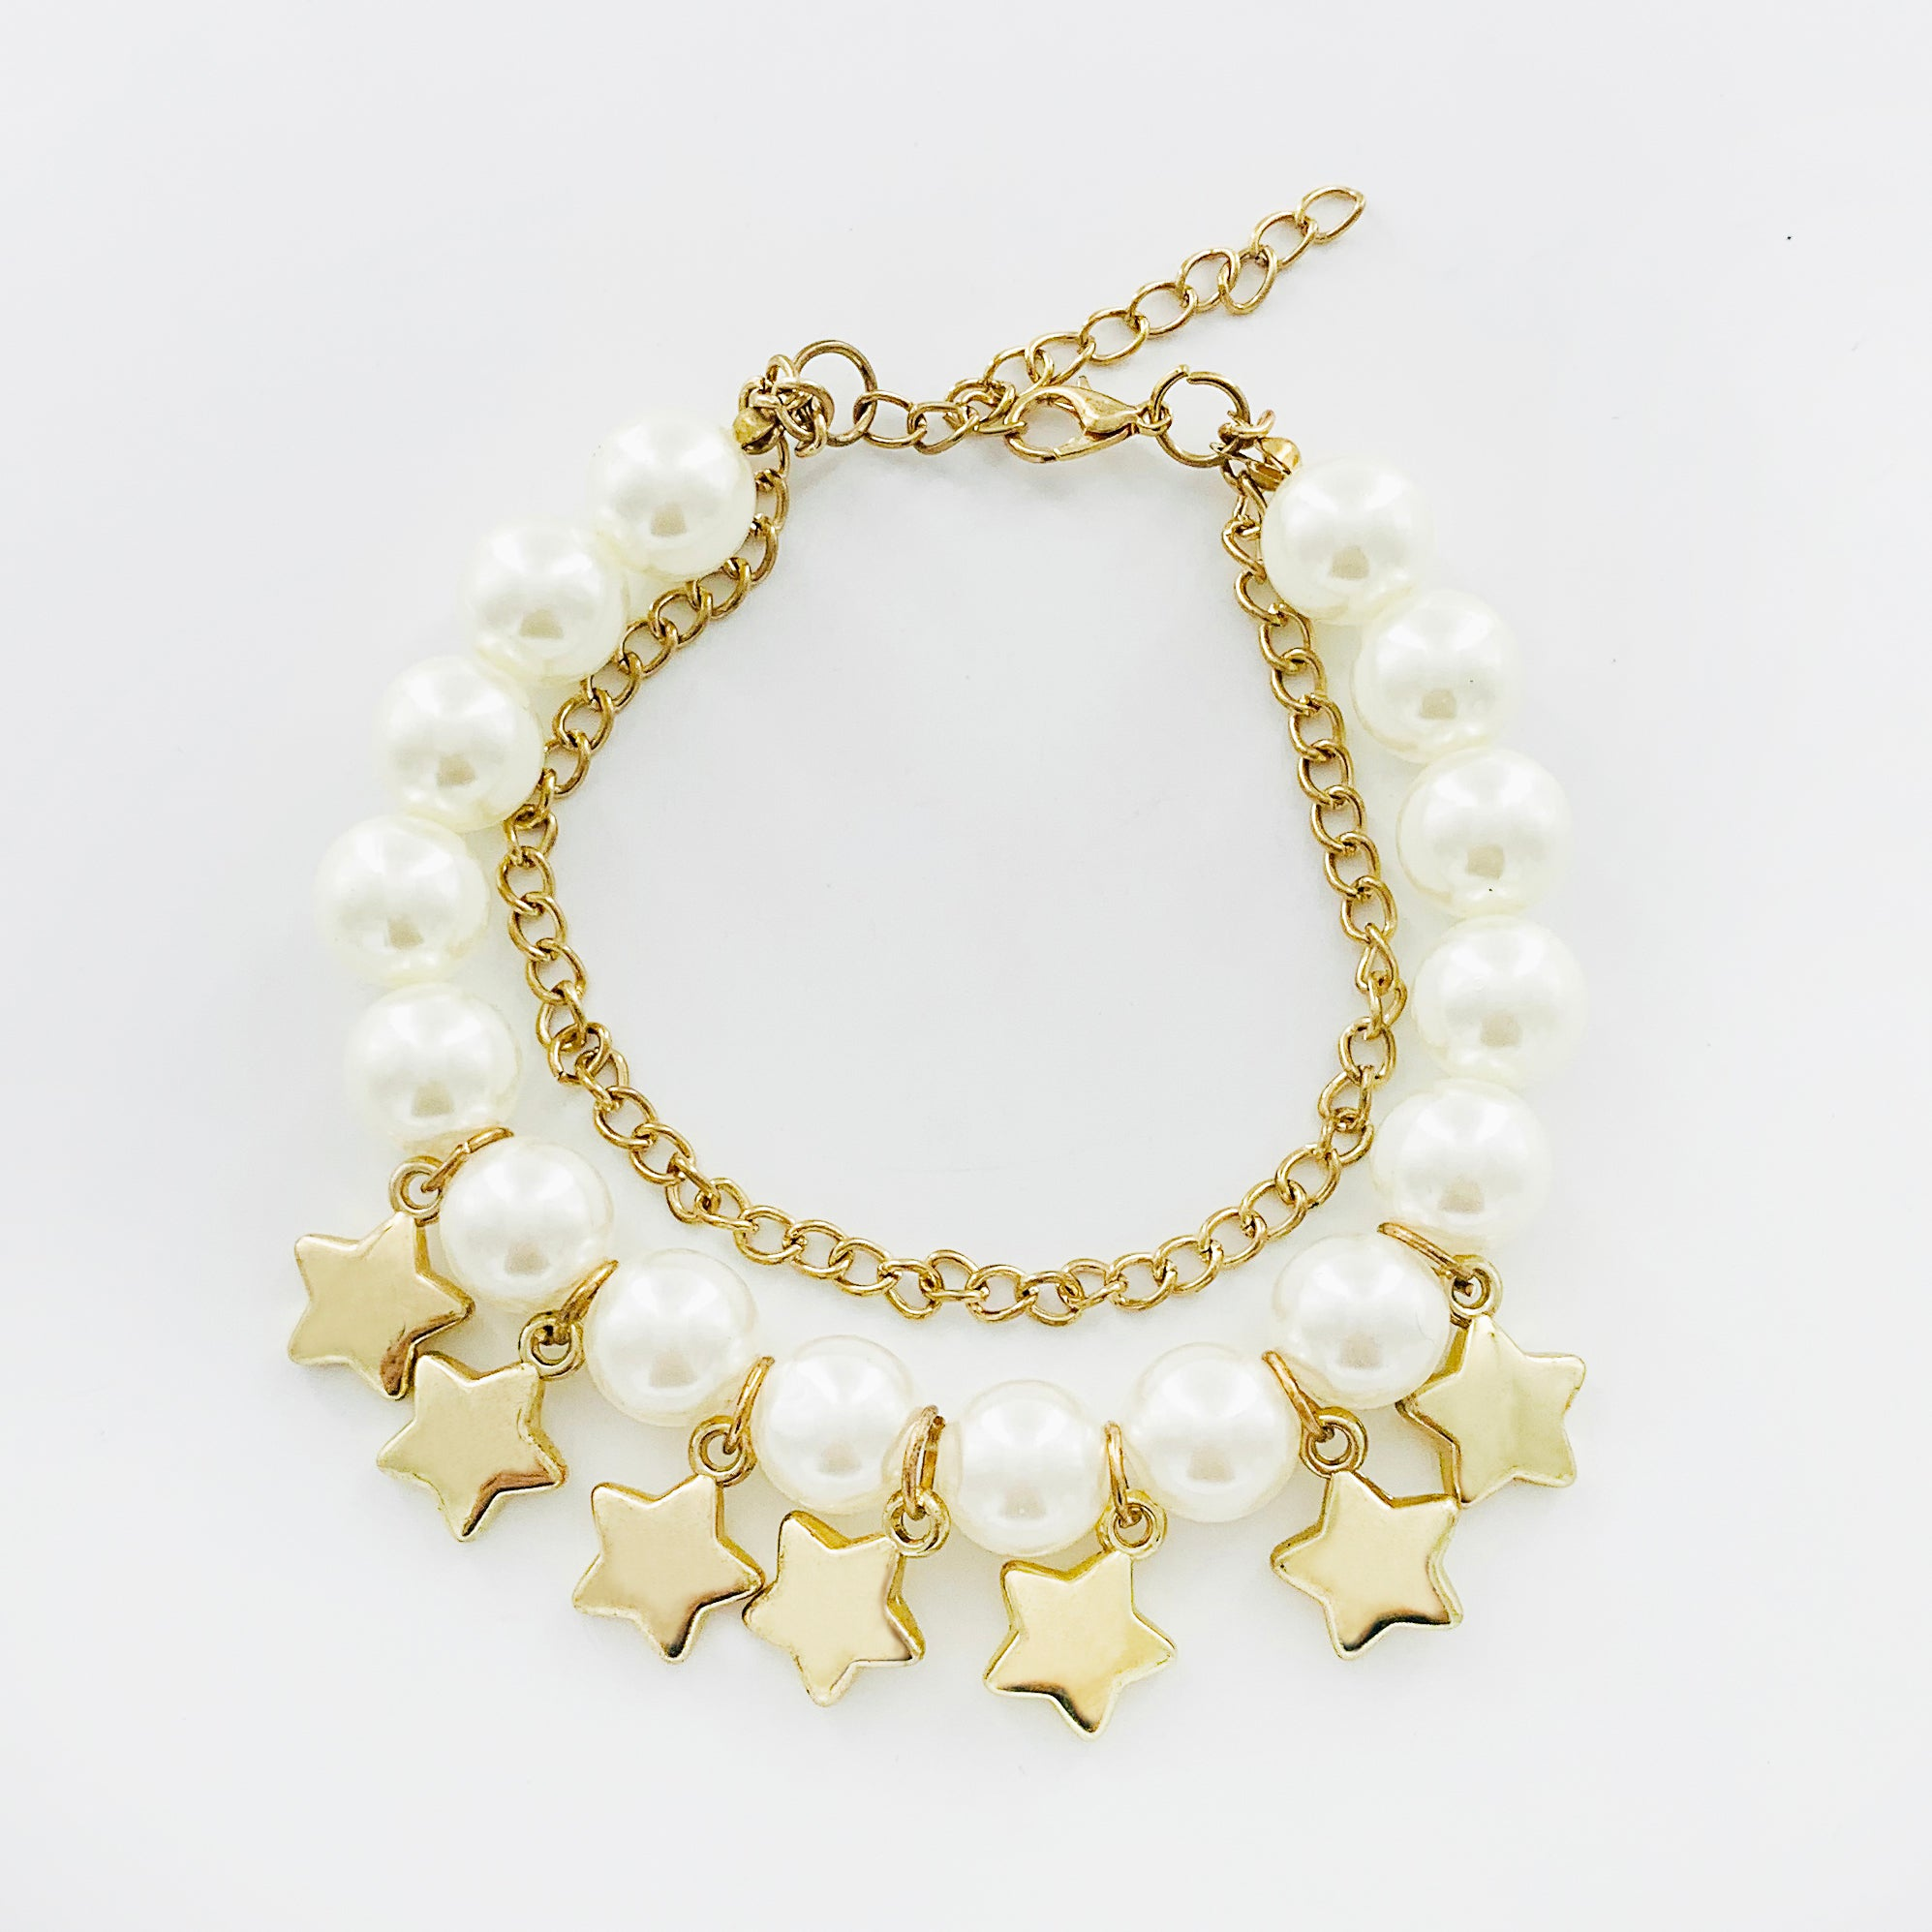 Gold and pearl bracelet with star charms